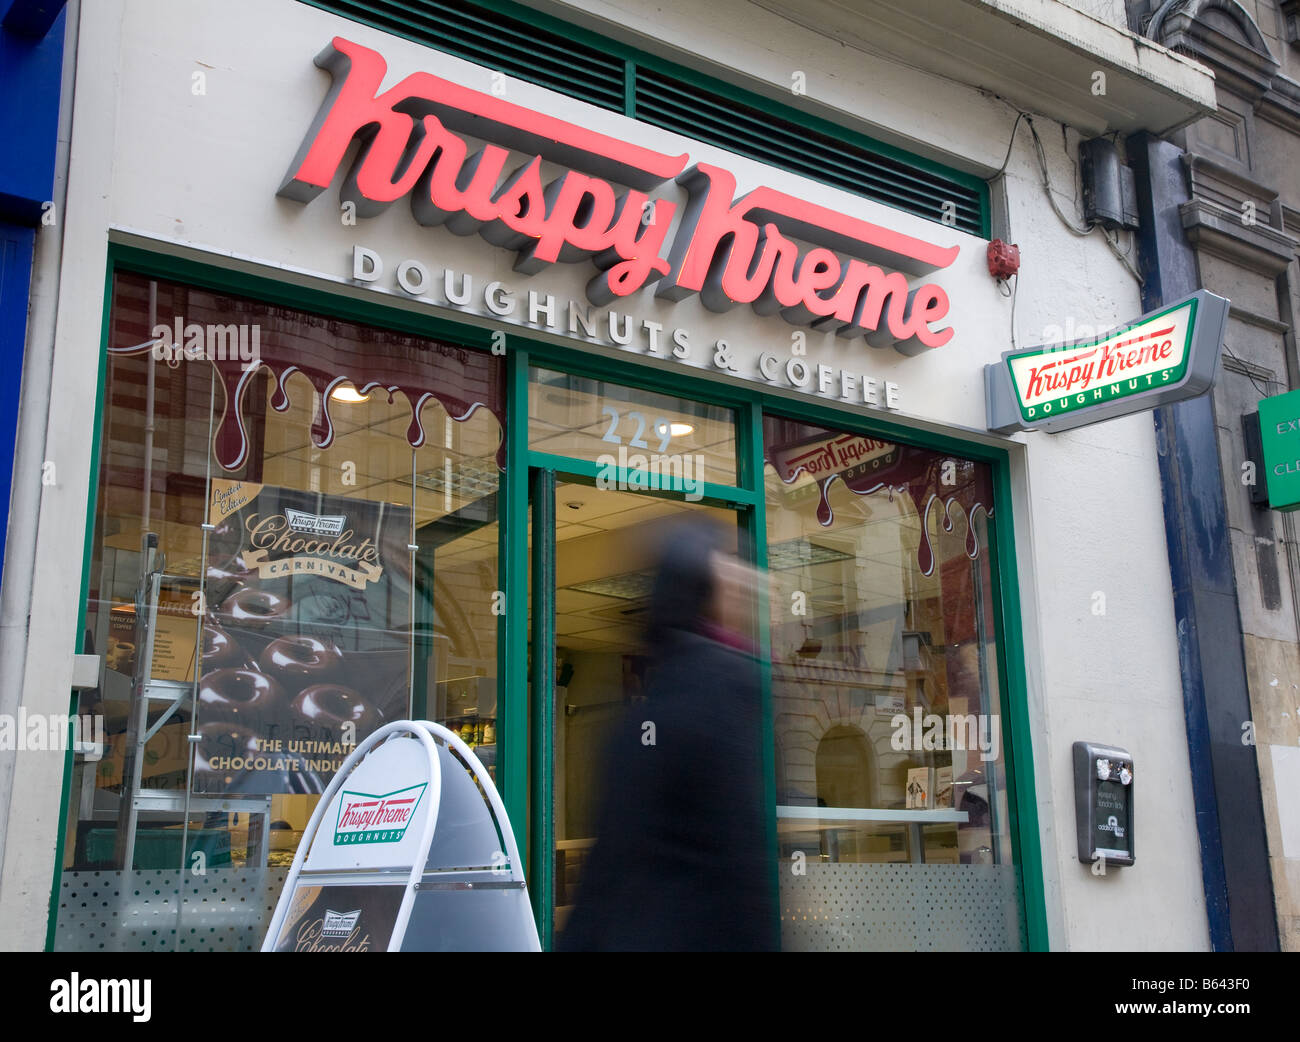 Krispy Kreme has 35 locations in the UK. Donut Shops Restaurants Breakfast, Brunch & Lunch. Related brands. Related News. Teachers get free Krispy Kreme coffee in June and July. Salisbury to Welcome Krispy Kreme to the Area. Charlottesville Shopping Center To Get Medical Clinic and Donuts. Popular Brands. Subway. Locations. McDonald's.